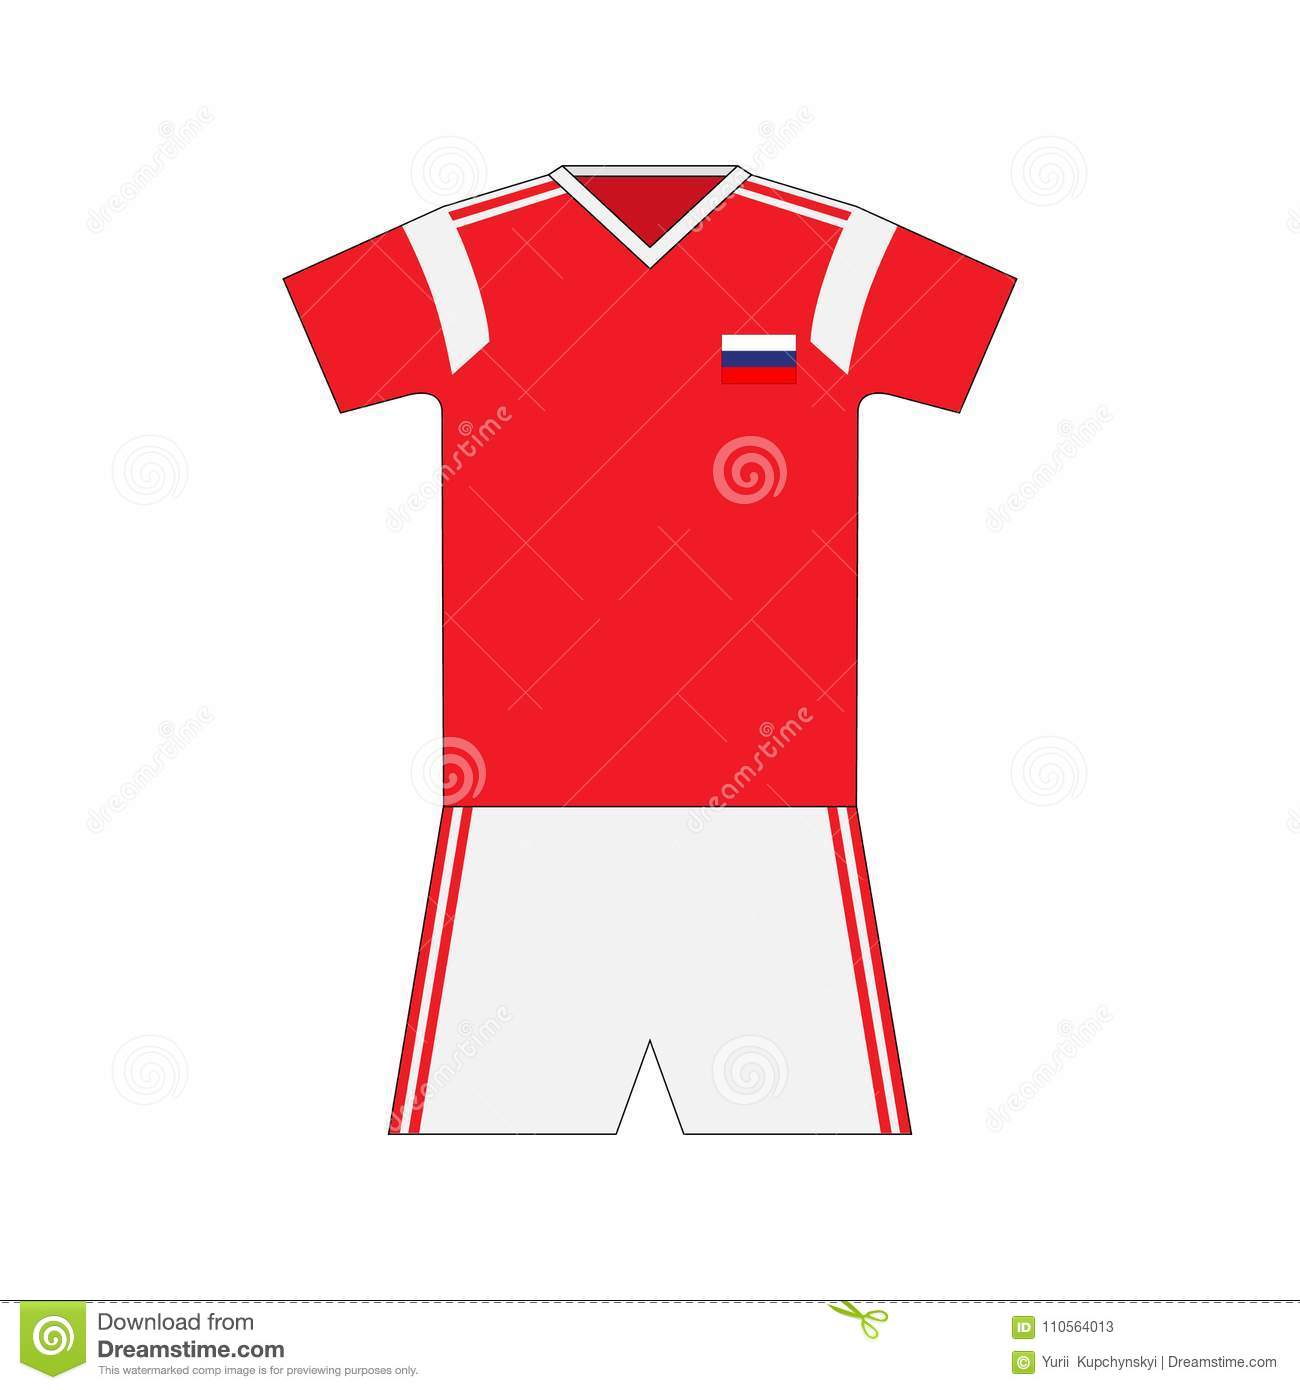 Football kit. Russia 2018. national team equipment. t-shirt. More similar stock  illustrations 6a9f7fc3a